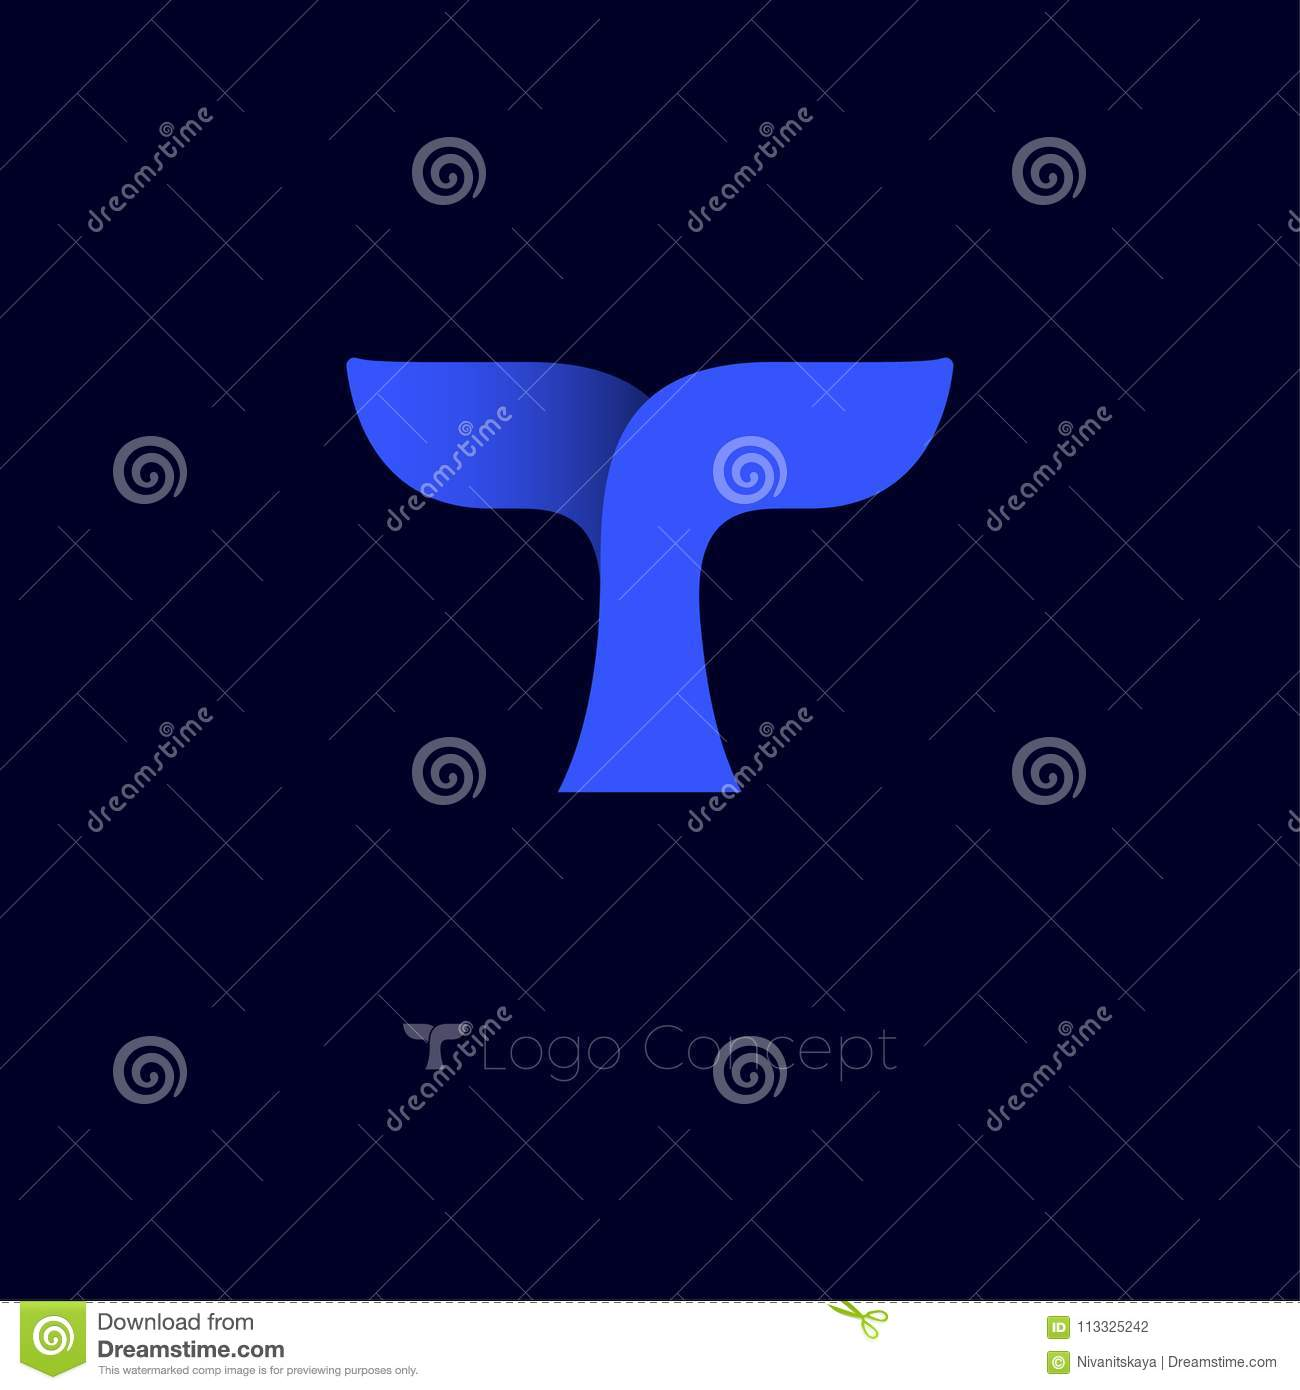 T Monogram Letter Origami Emblem Whale Blue Tail Logo Stock